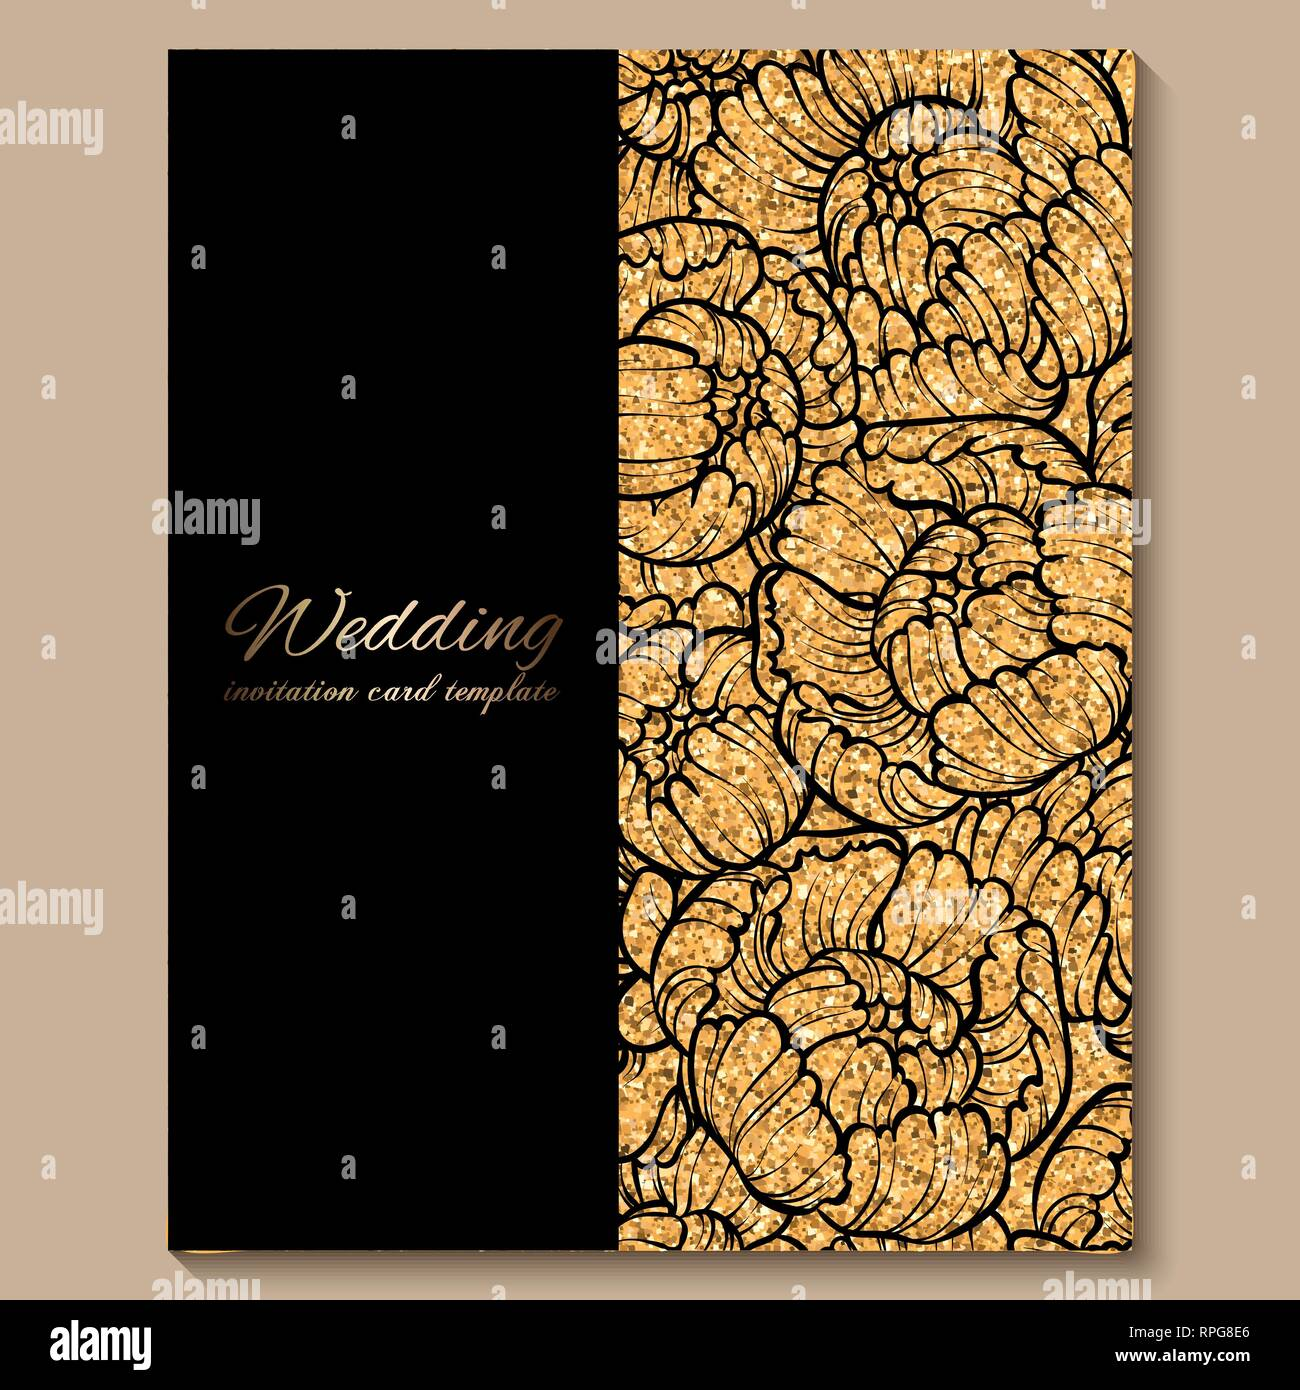 Antique Royal Luxury Wedding Invitation Card Golden Glitter Background With Frame And Place For Text Black Lacy Foliage Made Of Roses Or Peonies Stock Vector Image Art Alamy